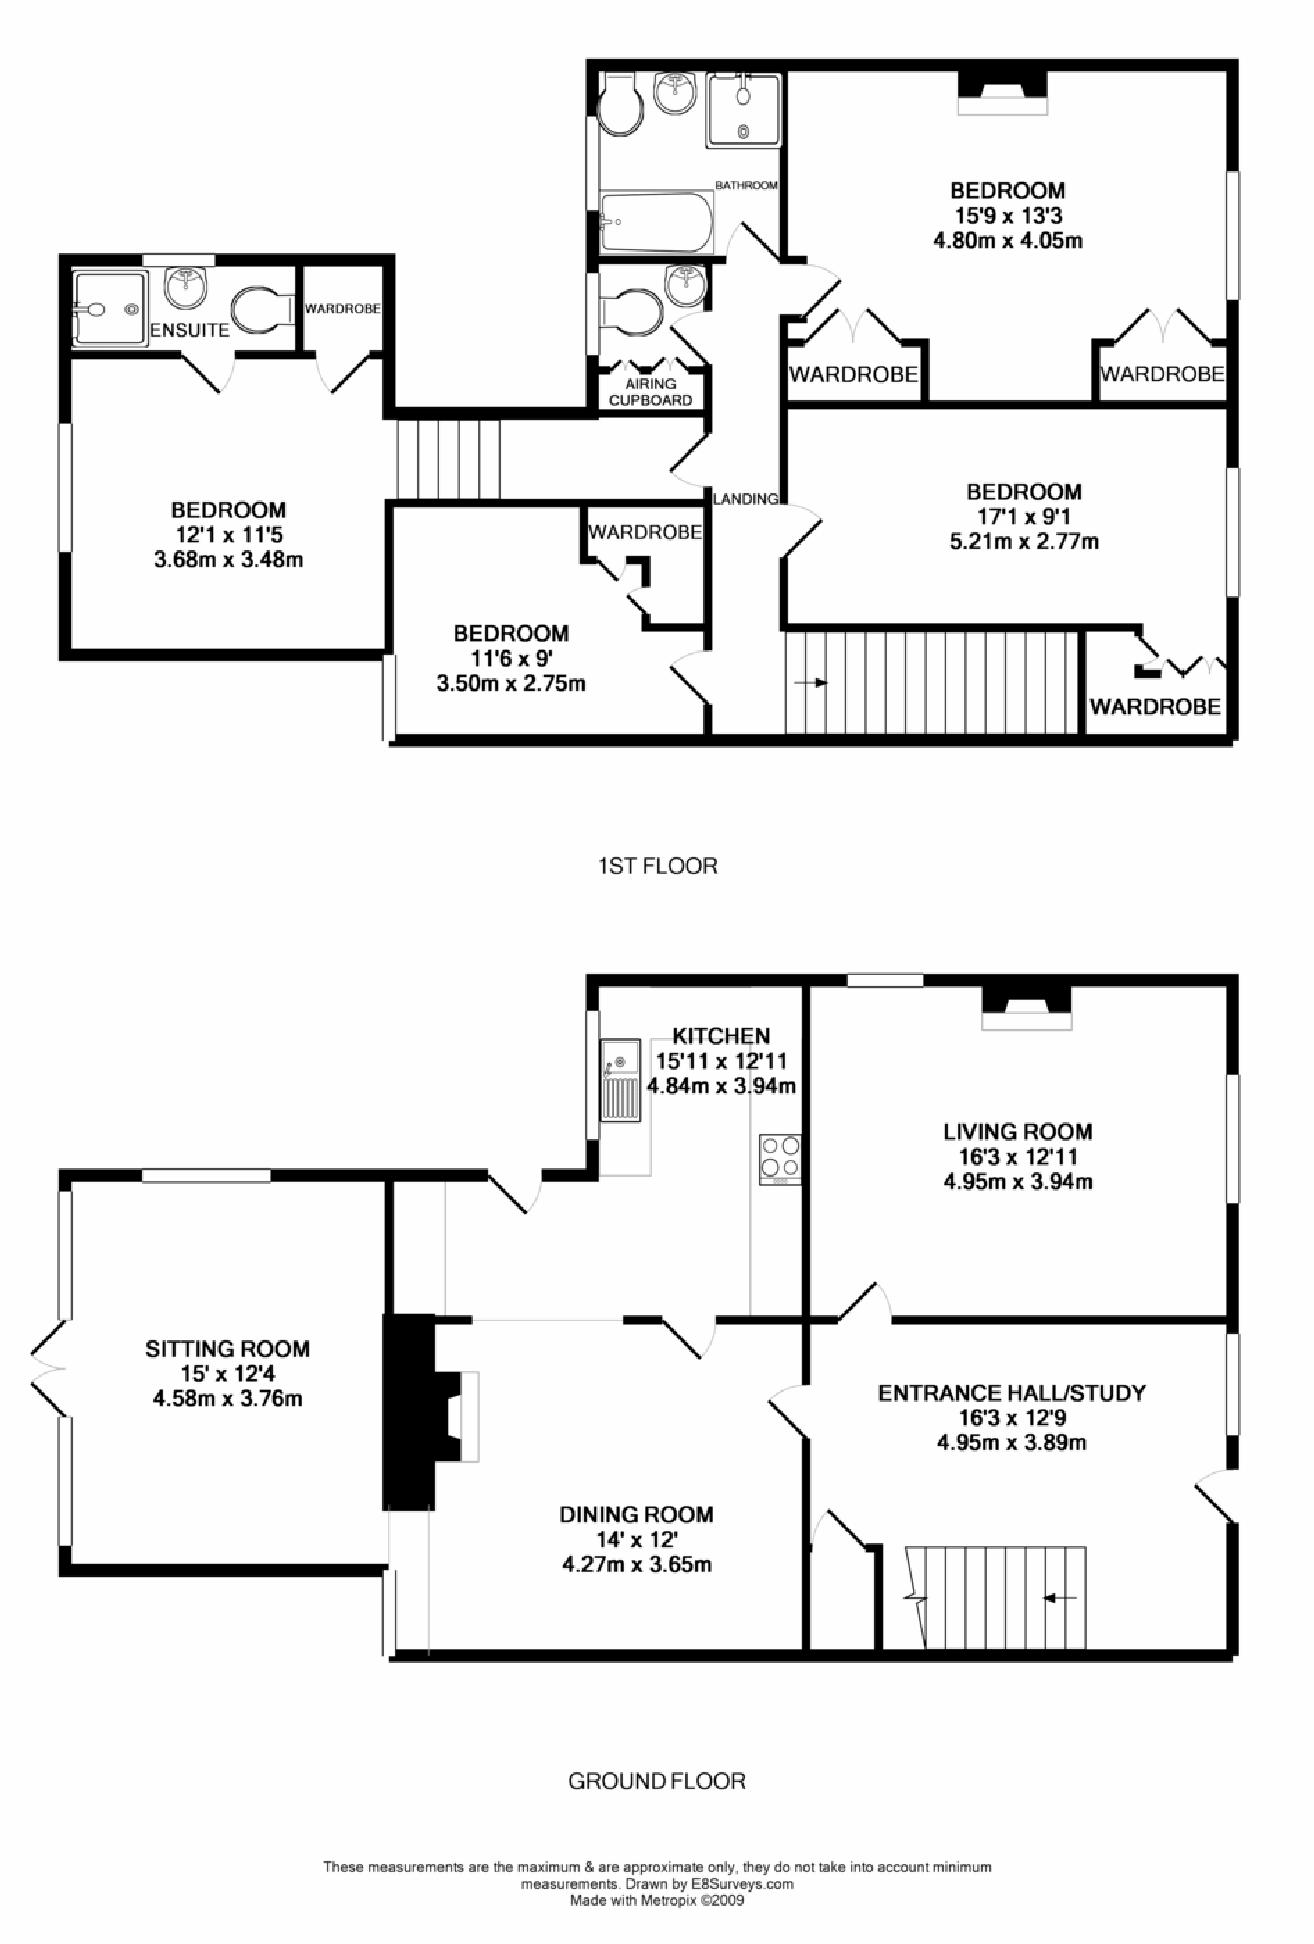 Doll House 901 3613 furthermore 151433606195046018 also Modern House Floor Plans also Ox5 as well Winchester Mystery House Floor Plan. on floor plans of 1 story 3 bedroom houses